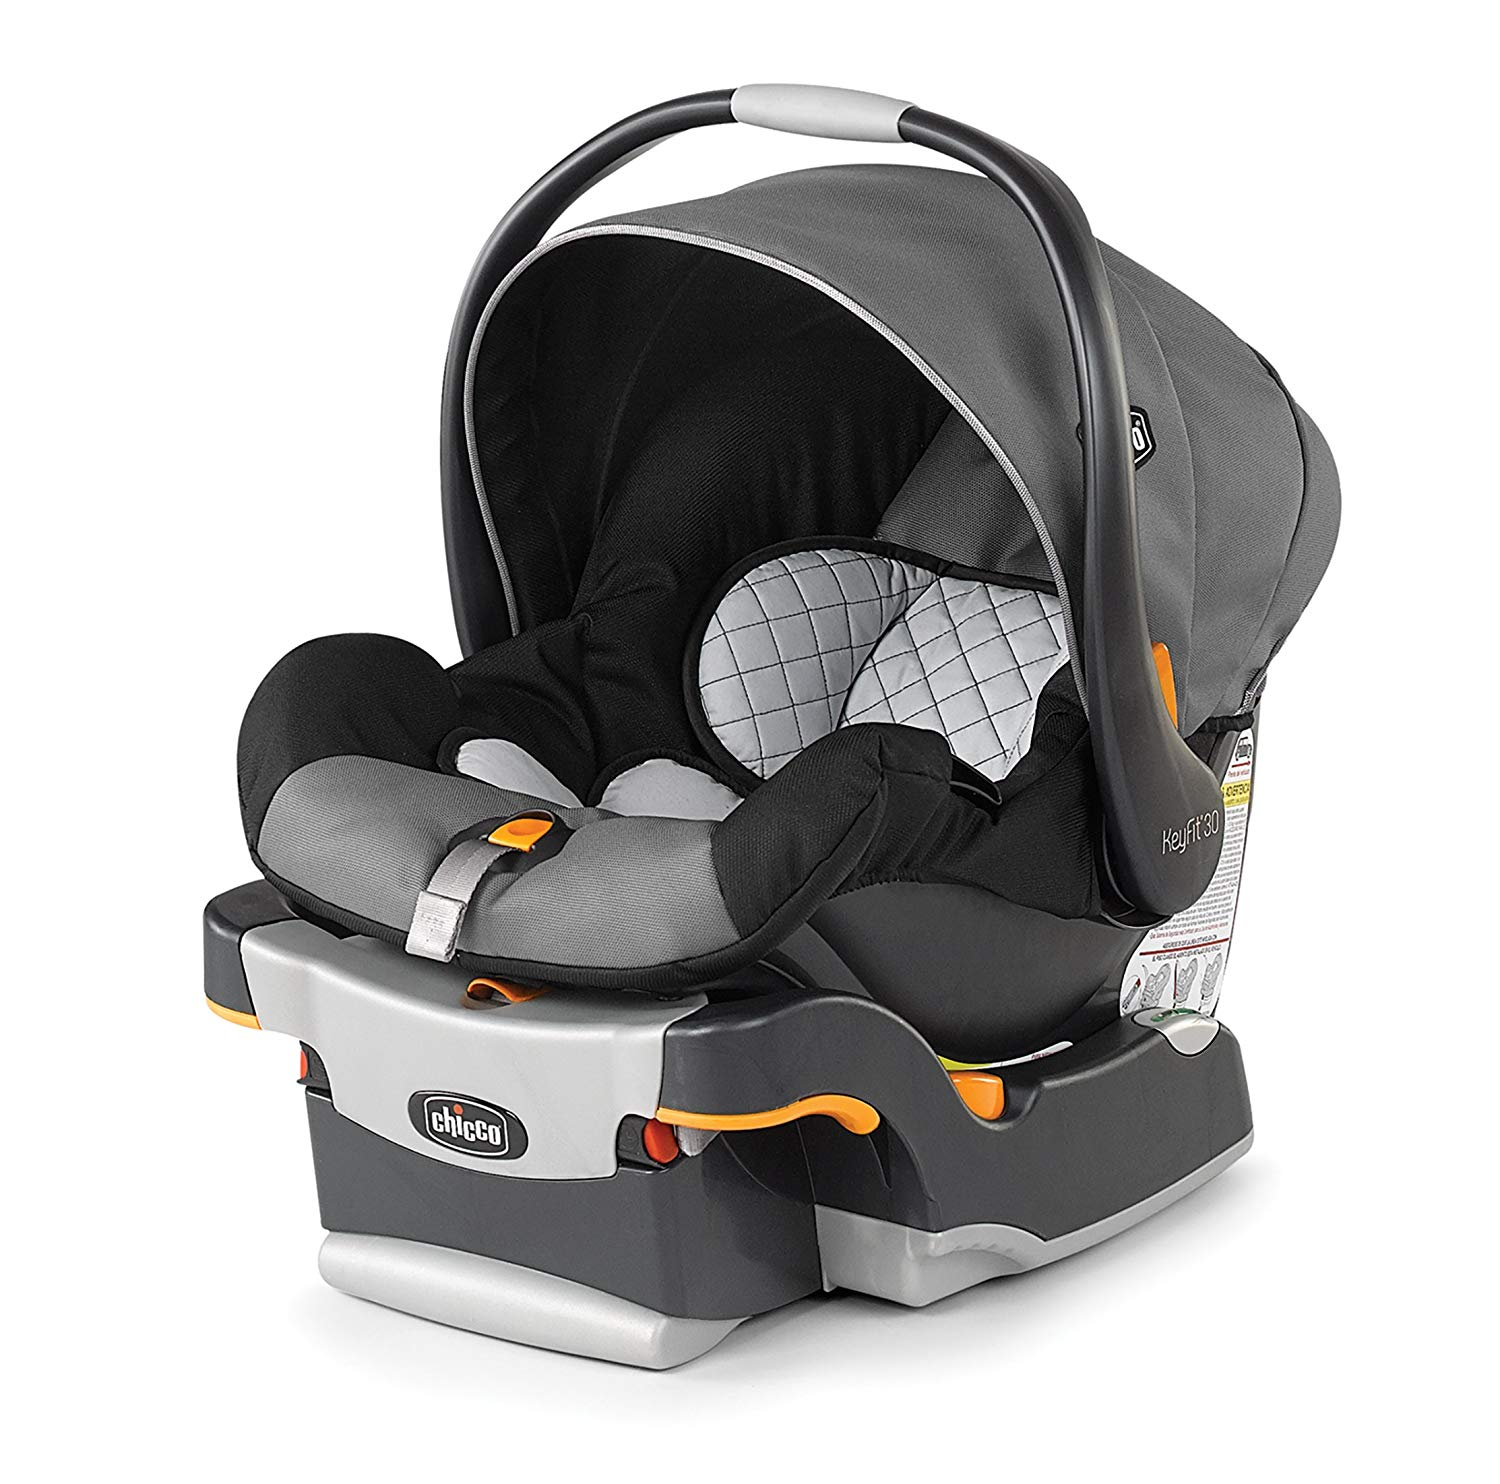 I want to say a huge thank you to Chicco for gifting us this car seat! Can't wait to bring the baby home in it!